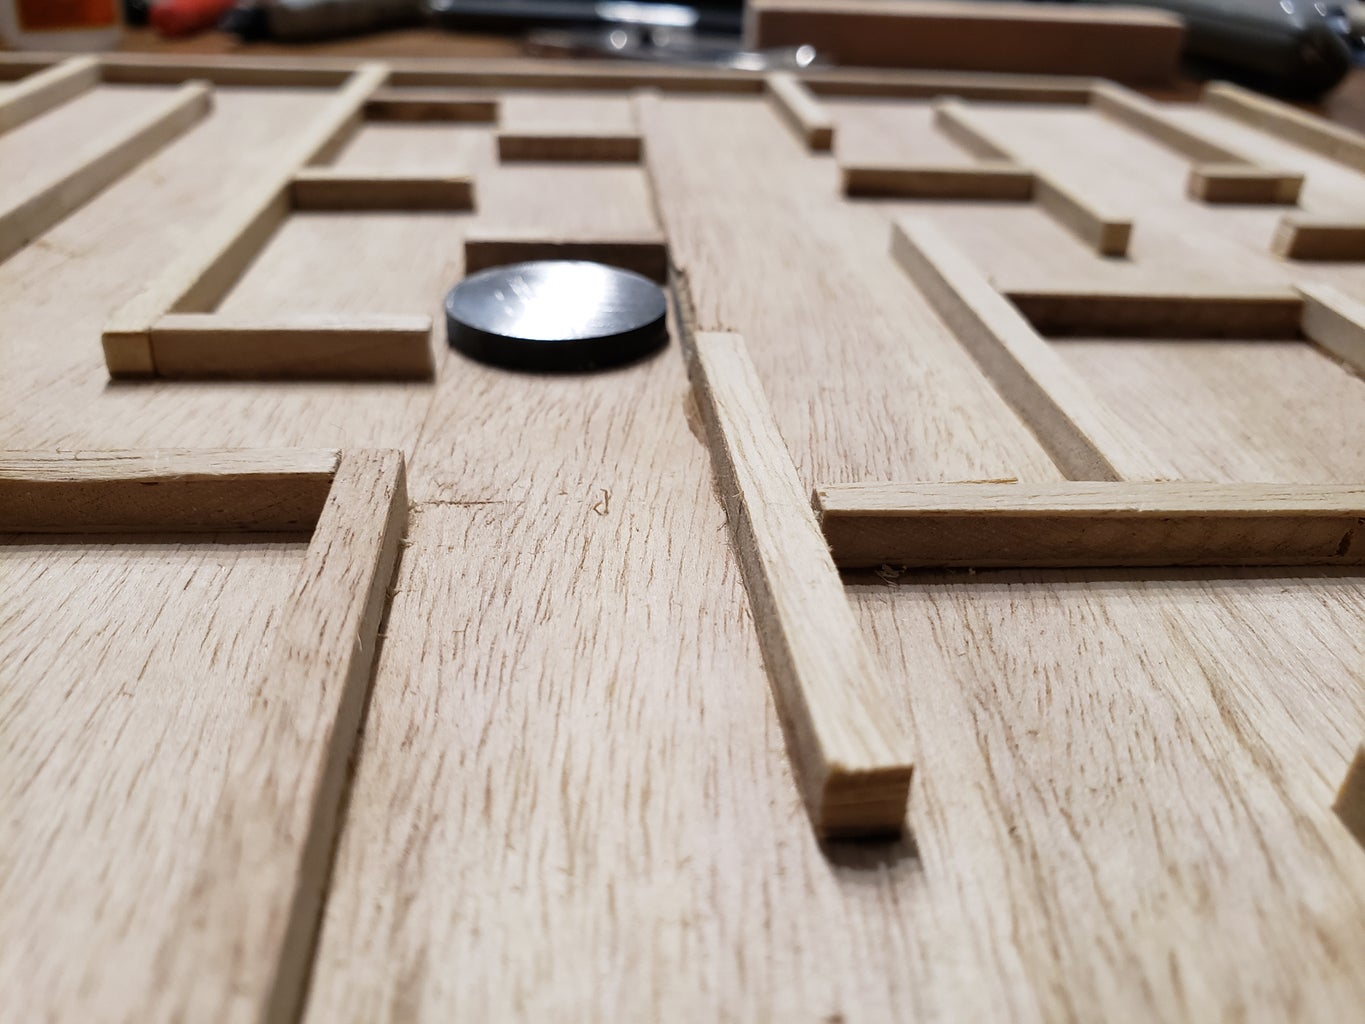 Use the Spacer to Glue Down the Maze...